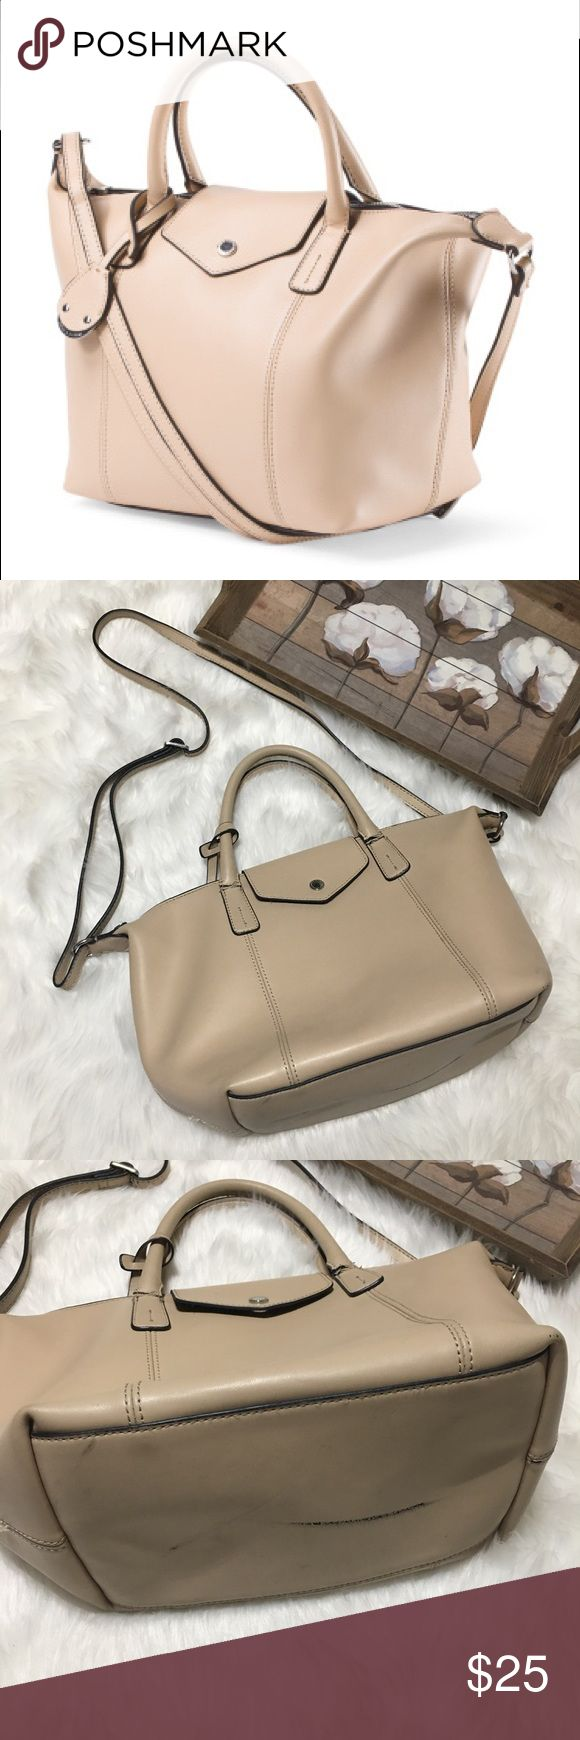 Emma & Sophia Leather Medium Tote Neutral Handbag Super chic an stylish Emma & Sophia leather Creme neutral purse bag. In used condition. Shows some signs of wear but still plenty of life left. Great for all occasions. Small compartments inside to store smaller items. The perfect medium Tote Handbag. Emma & Sophia Bags Shoulder Bags